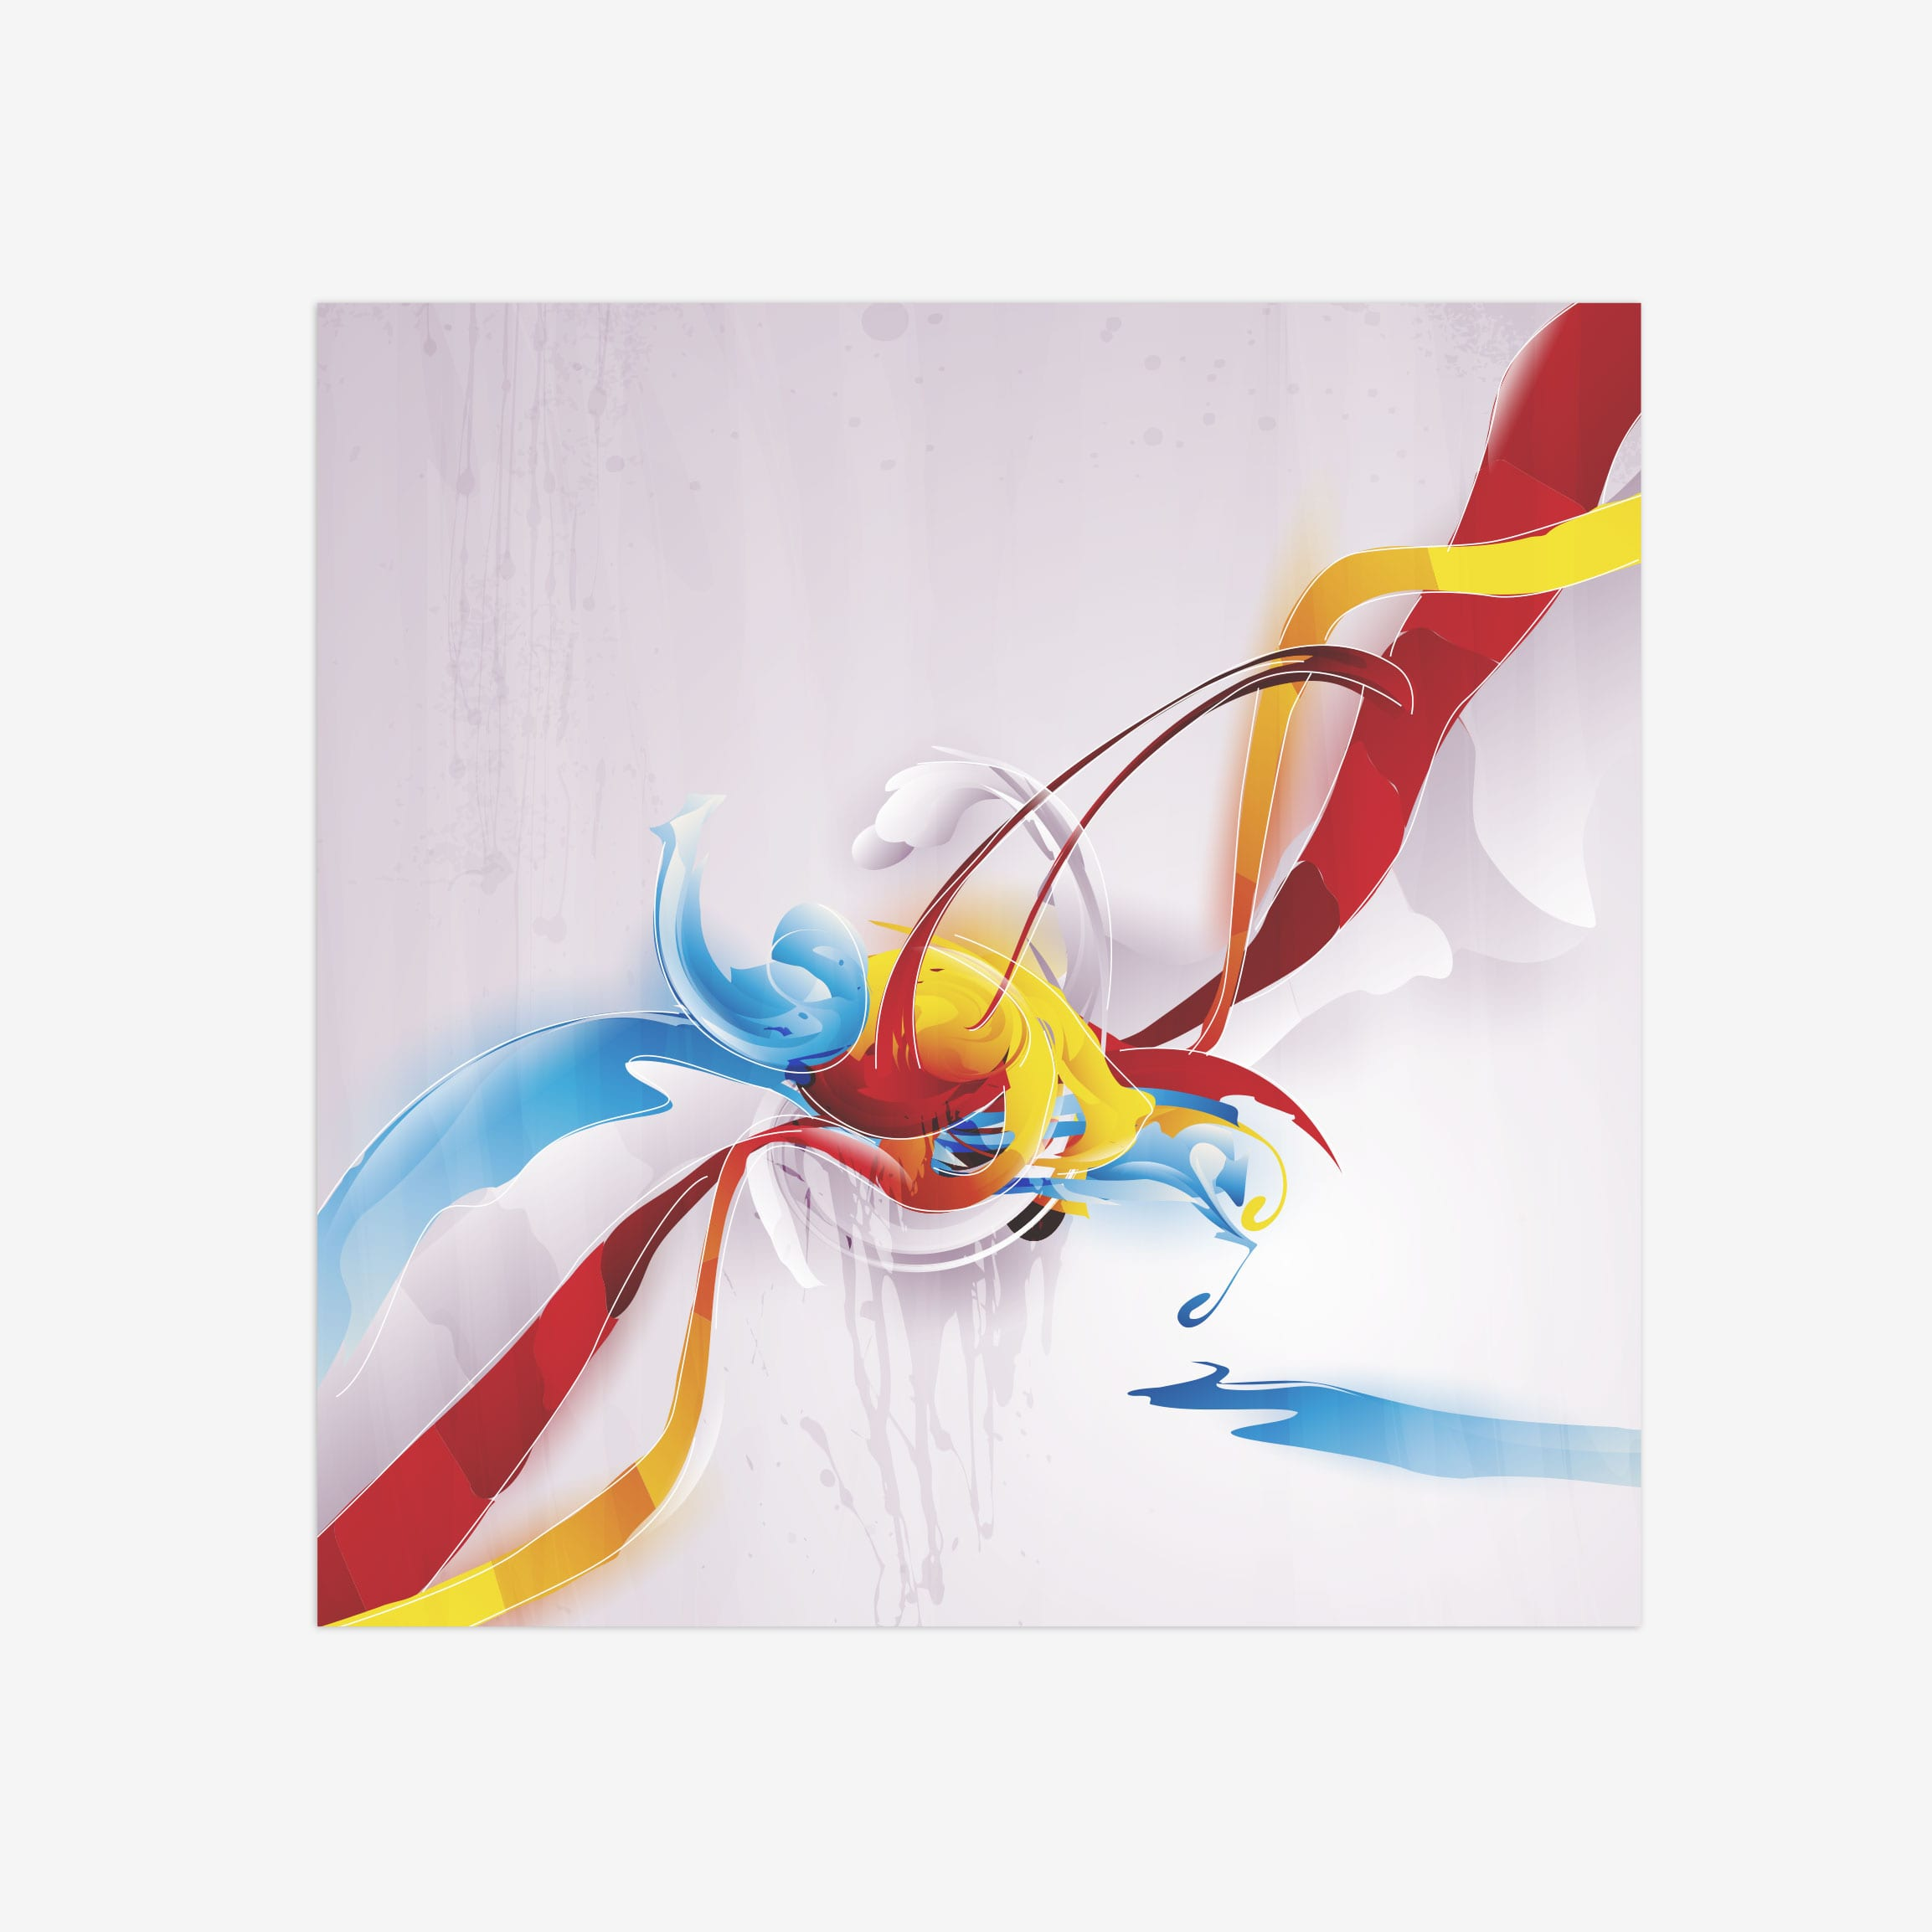 Wall mounted art canvas. The painting is of bright streak of many colors spinning from a centre point